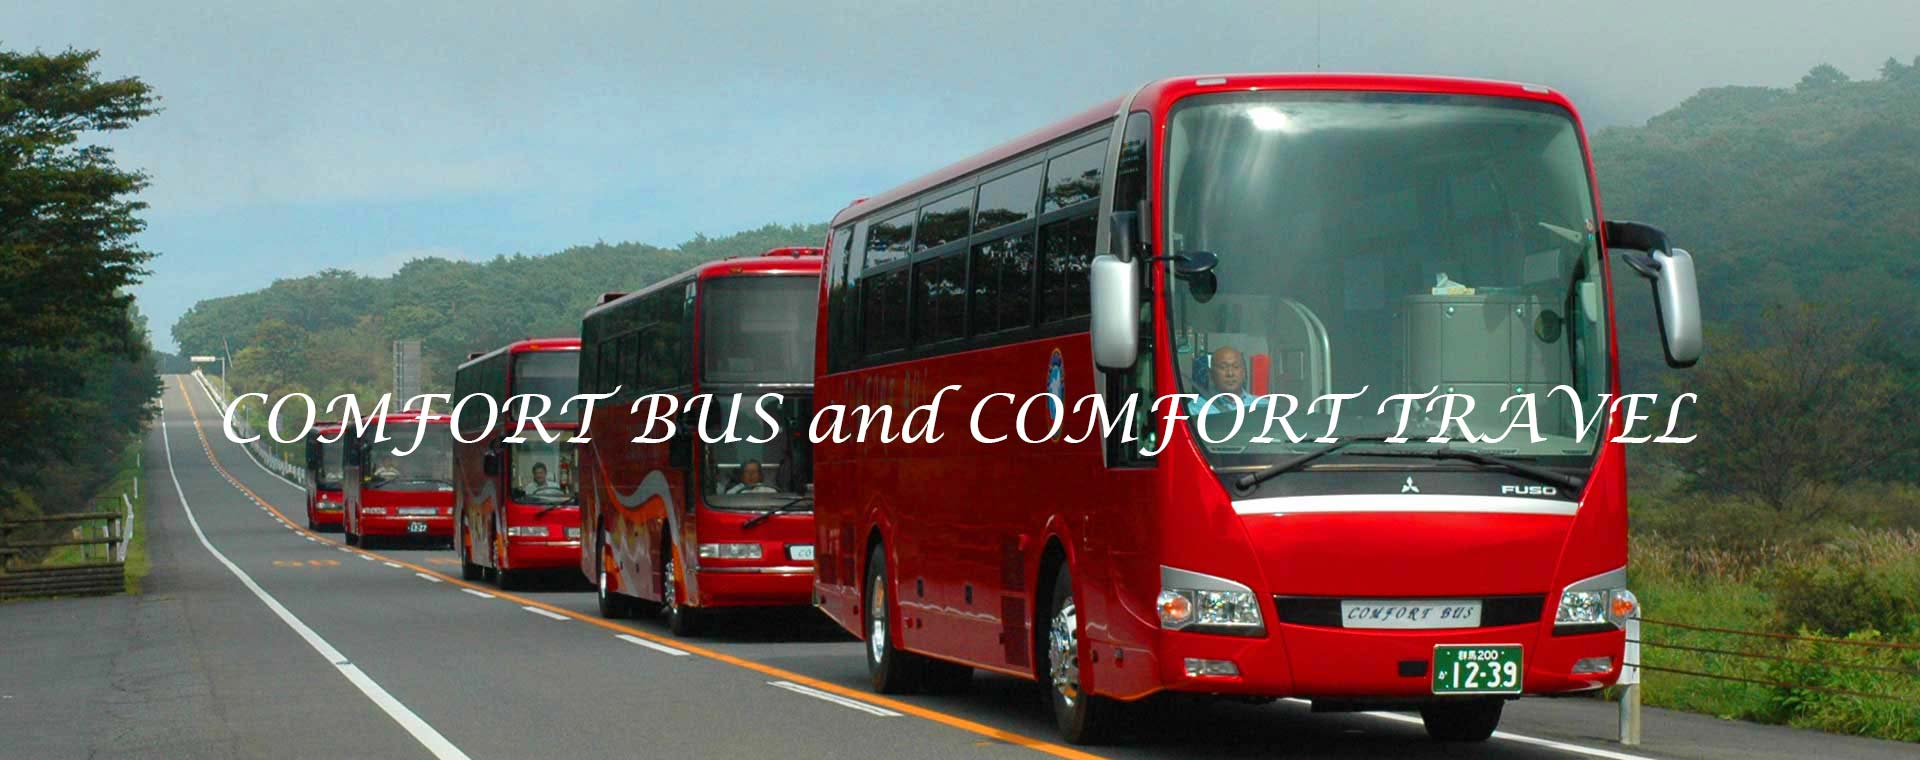 COMFORT BUS and COMFORT TRAVELスライドショー画像